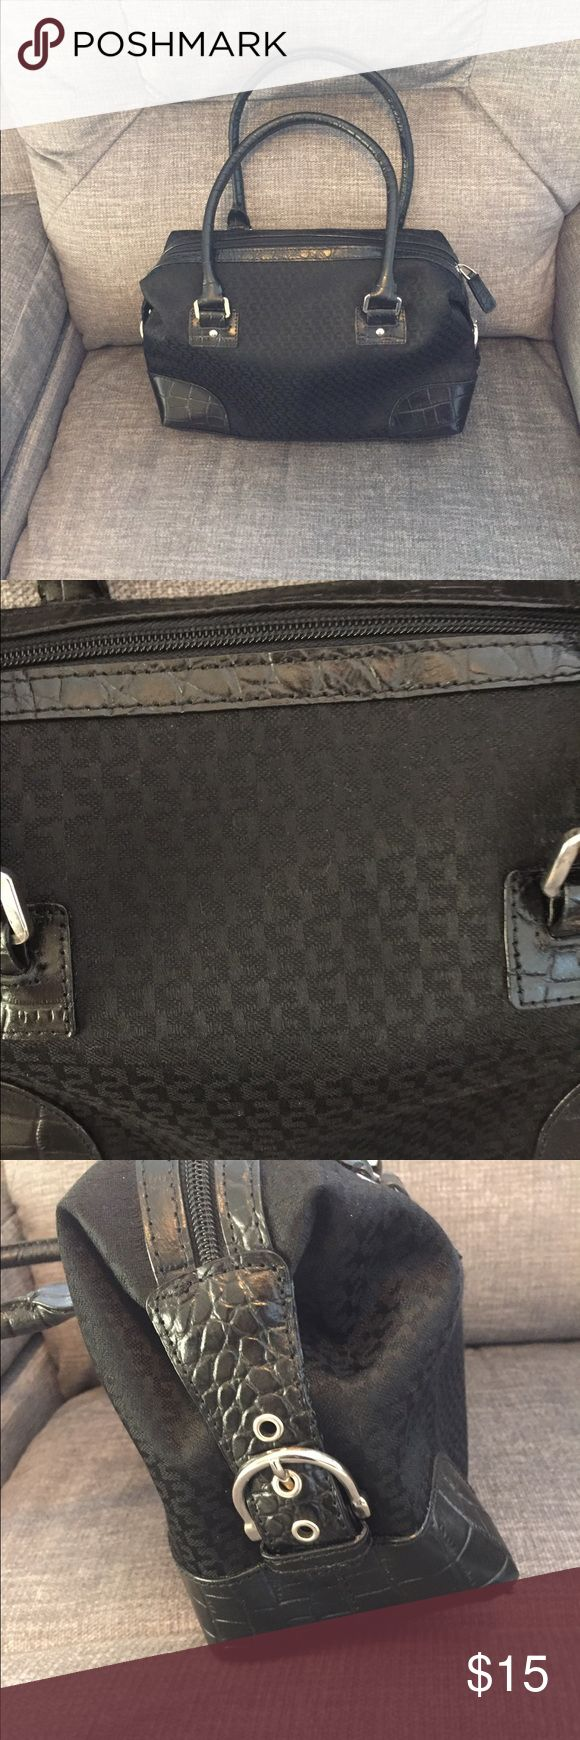 "🆕charter club black handbag. Cute black fabric and faux leather bag.  Inside has two sm open pockets, opposite side has two sm slots for credit cards, another open pocket you could put your smart ph, zippered pocket and fairly lg open pocket.  Bottom has sm feet.  Measures approx 11"" long, approx 4 1/2"" wide and from top of handles to bottom of bag approx 14"".  Smoke free home. Bags"